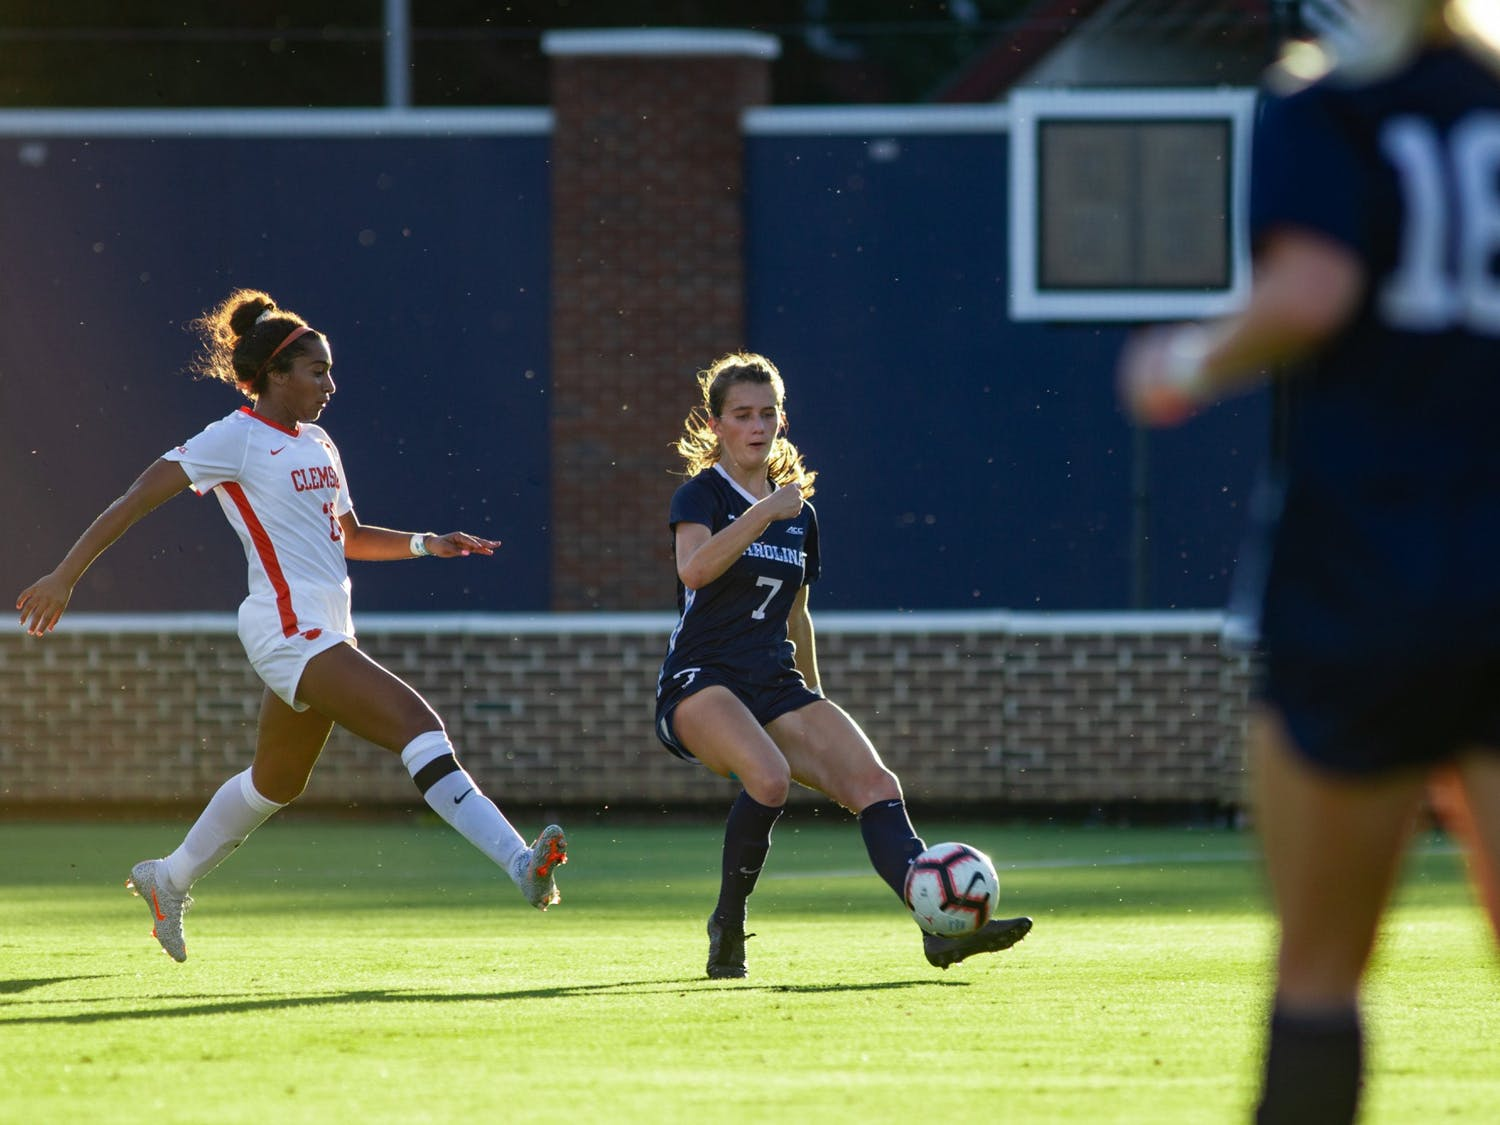 UNC sophomore defender Julia Dorsey (7) dribbles the ball during the game against Clemson at Dorrance Field on Thursday, Oct. 1, 2020. UNC beat Clemson 2-0.